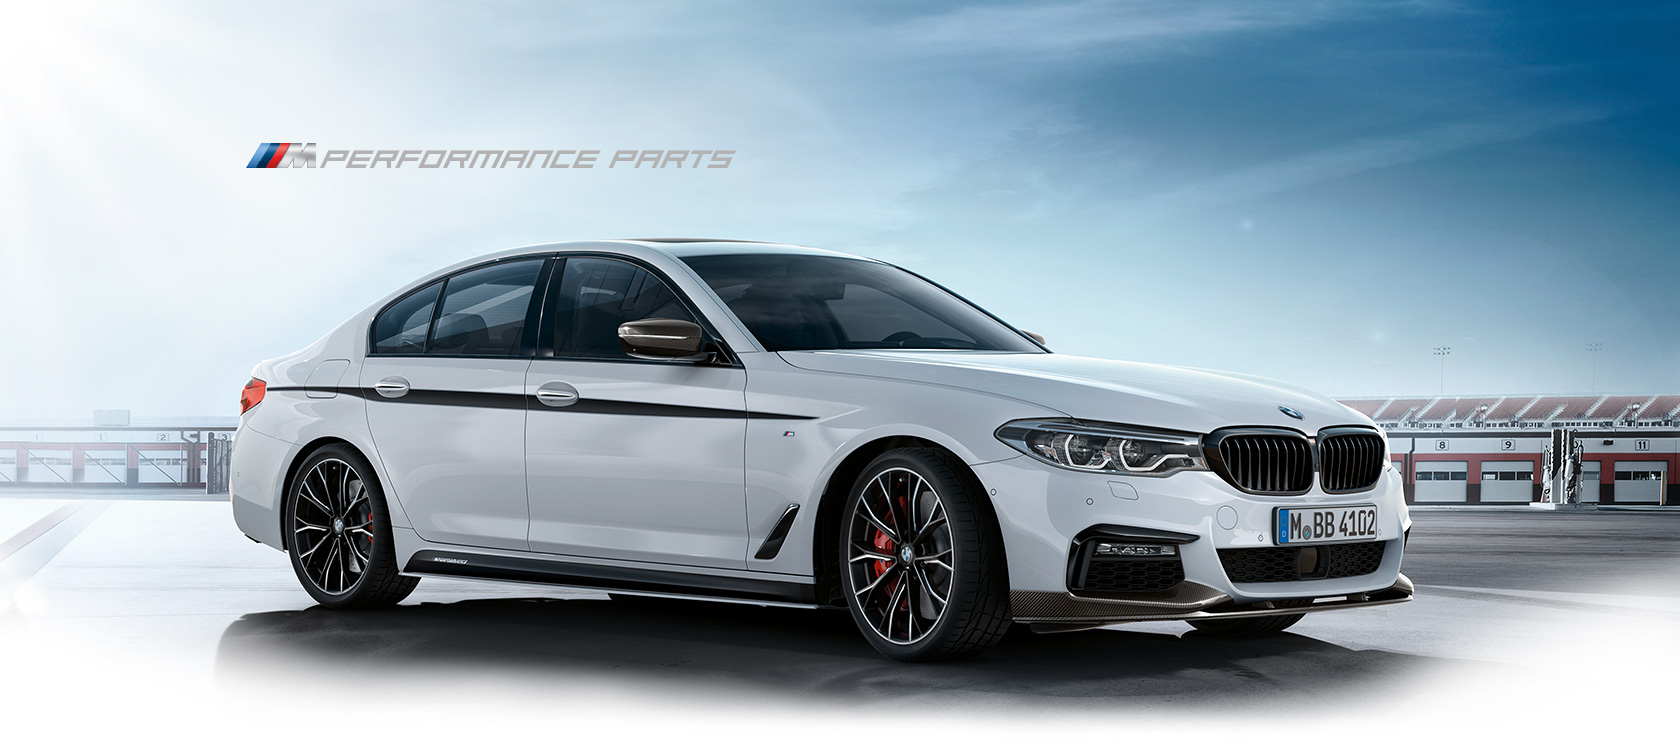 BMW 5 Series: Caring for special components